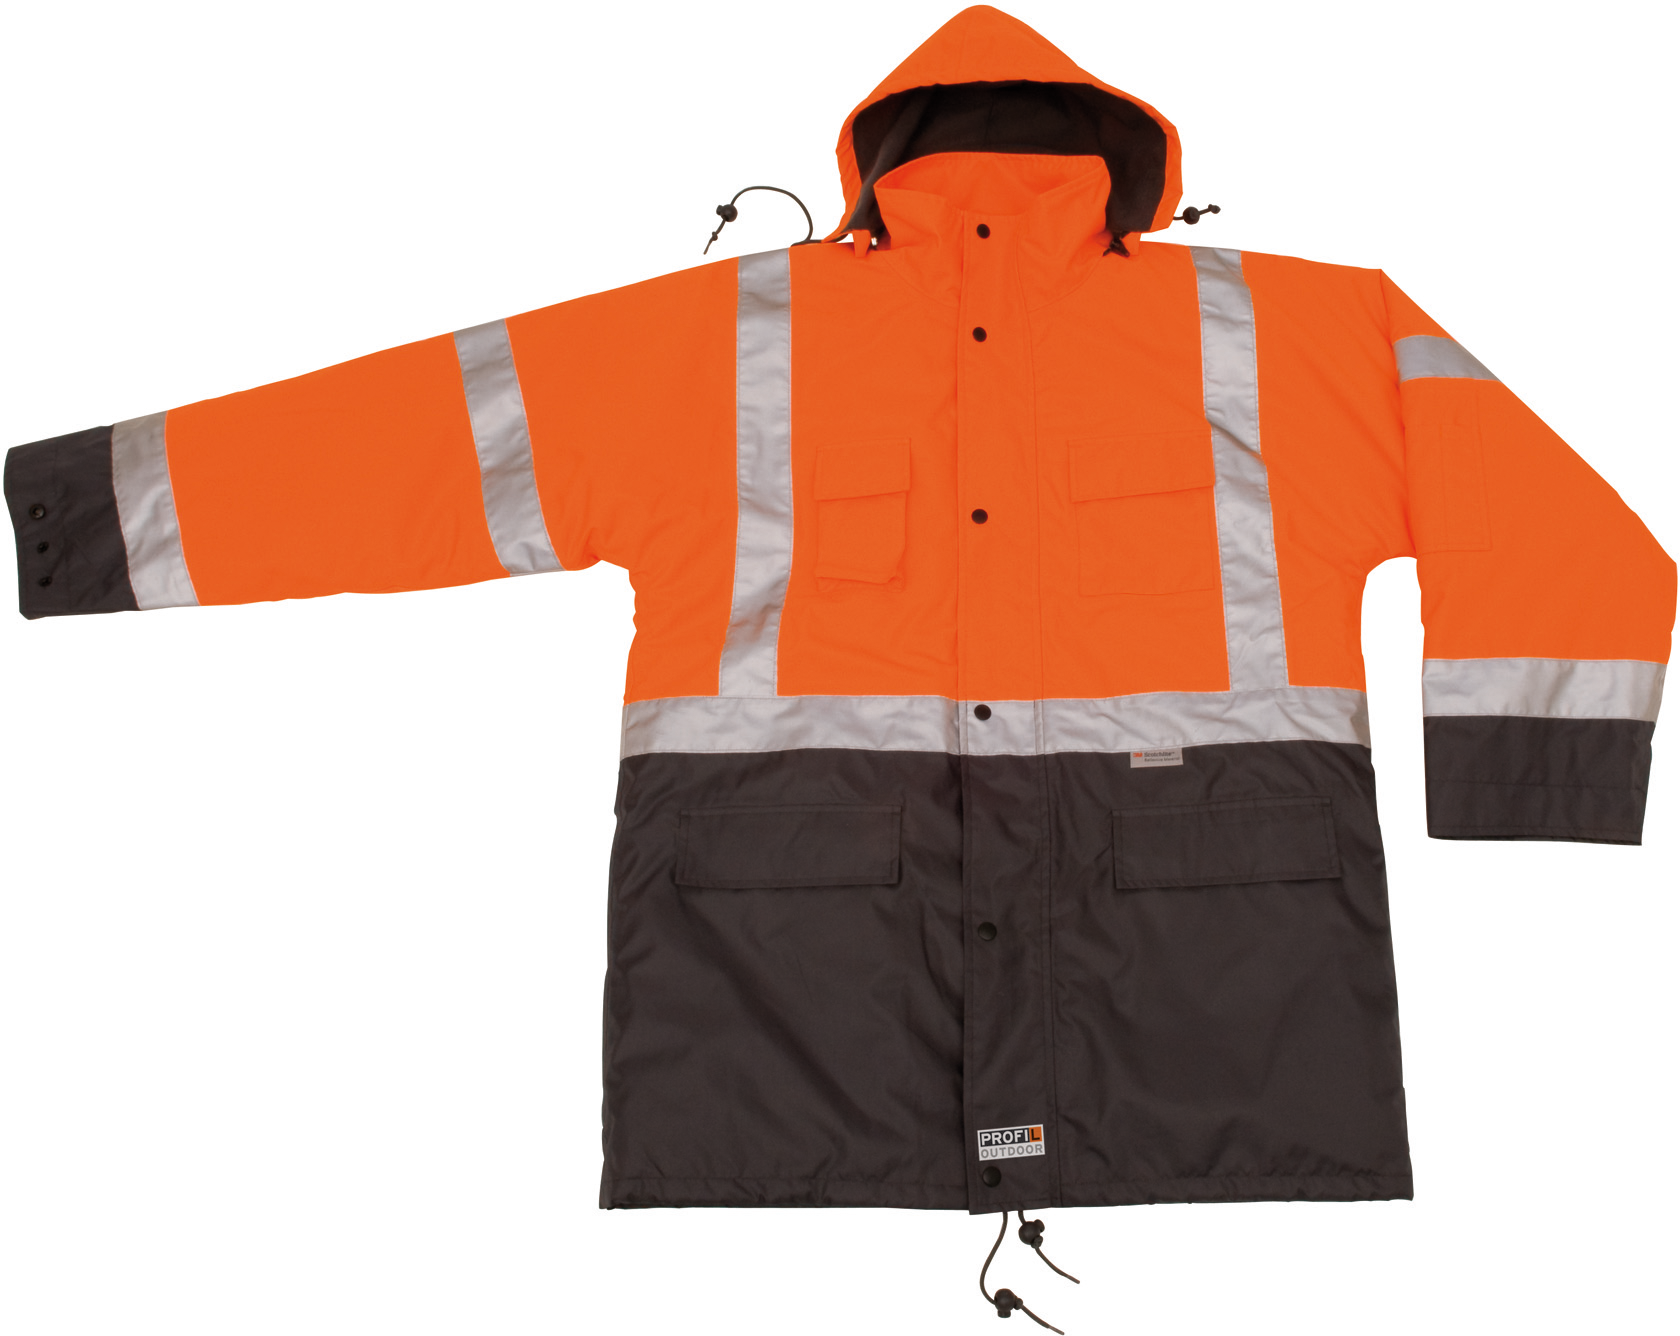 Warn-Wetterschutzparka orange, S PROFIL